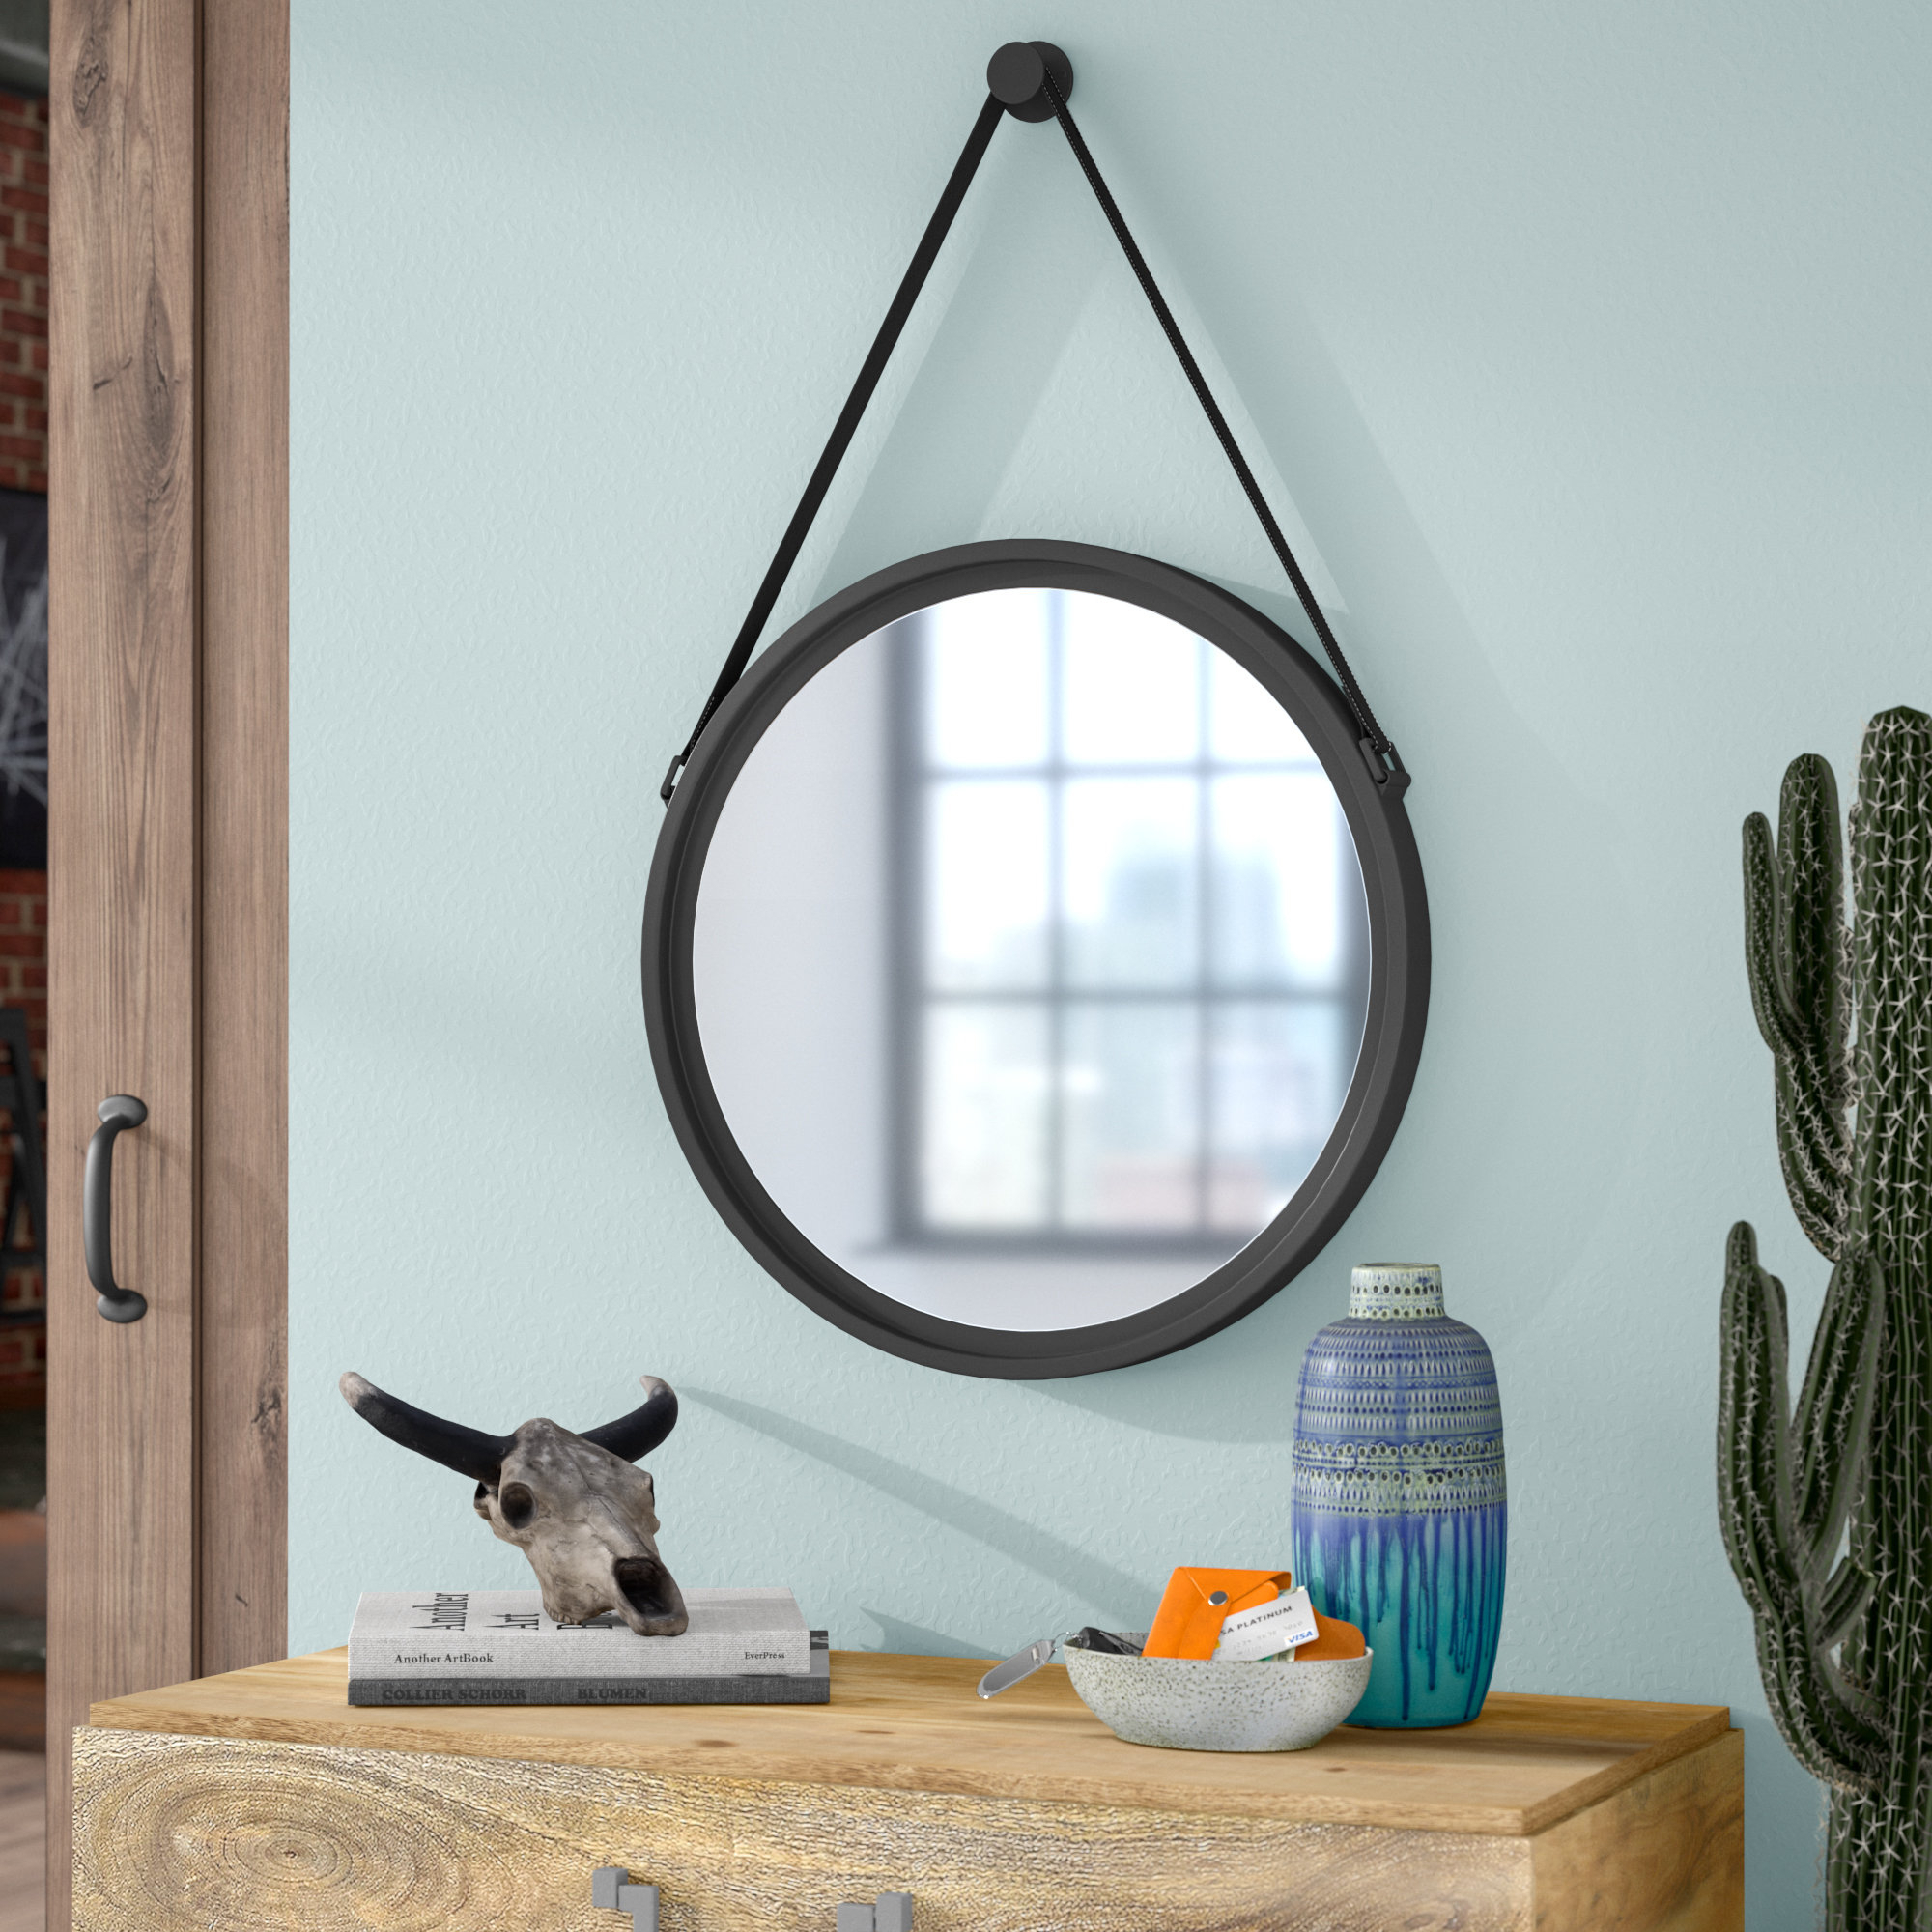 Trent Austin Design Round Metal Wall Mirror & Reviews | Wayfair With Regard To Round Galvanized Metallic Wall Mirrors (View 13 of 20)